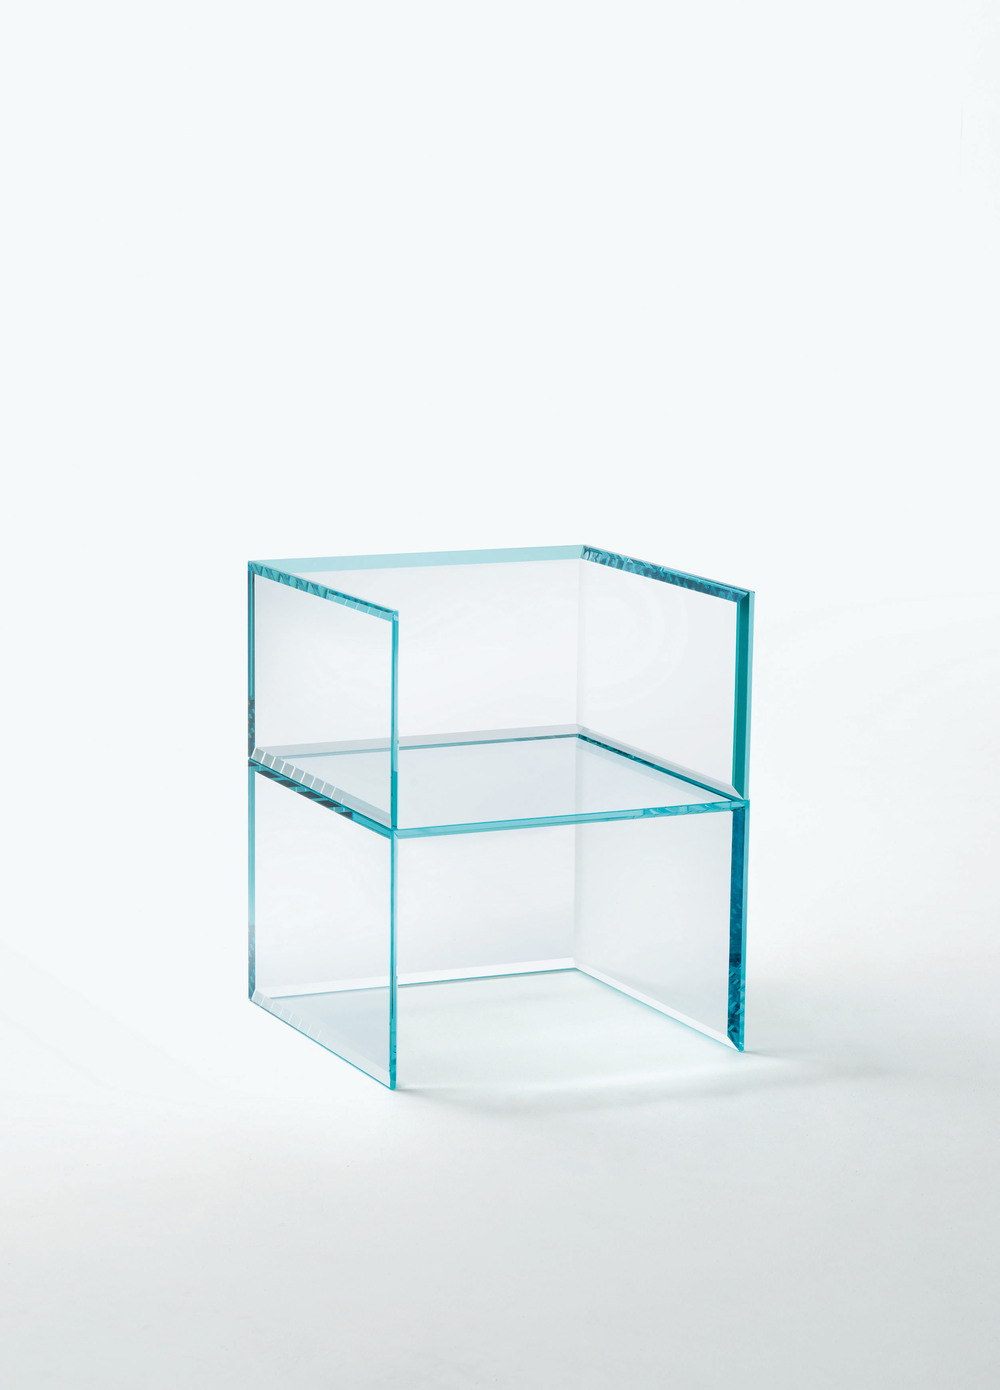 the-tree-mag_PRISM GLASS CHAIR  GLASS SOFA by Tokujin Yoshioka_30.jpg